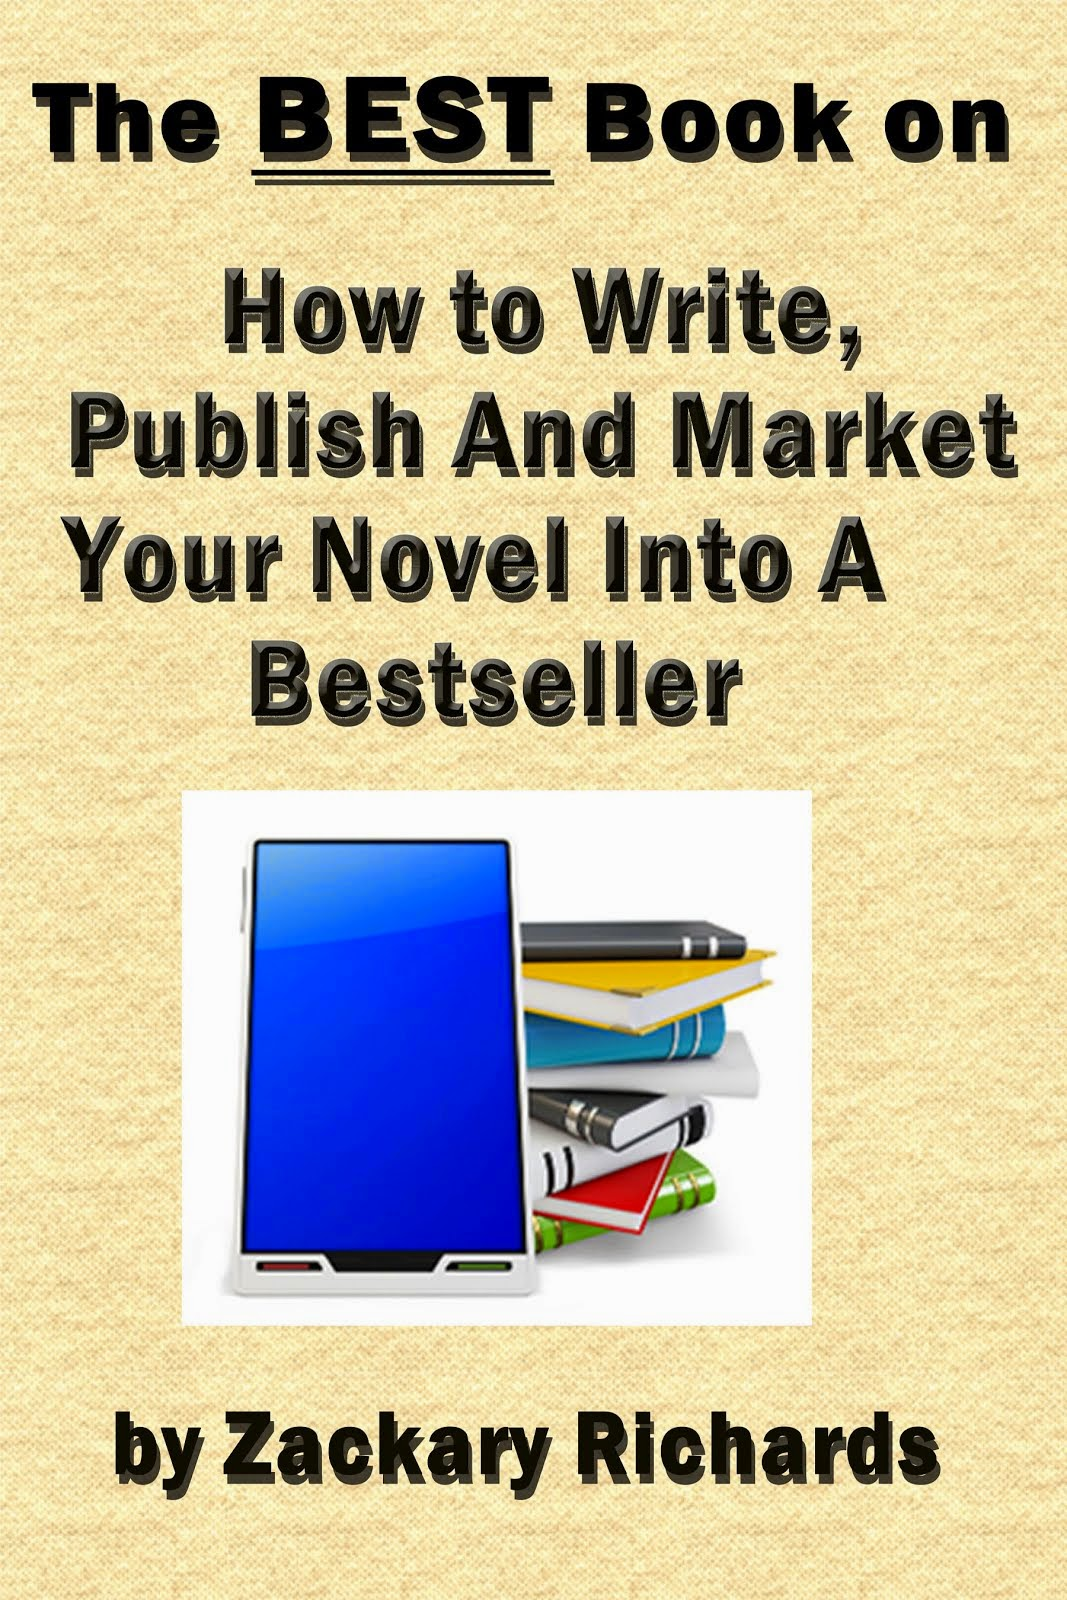 The Best Book on How to Write, Publish and Market Your Novel into a Best Seller